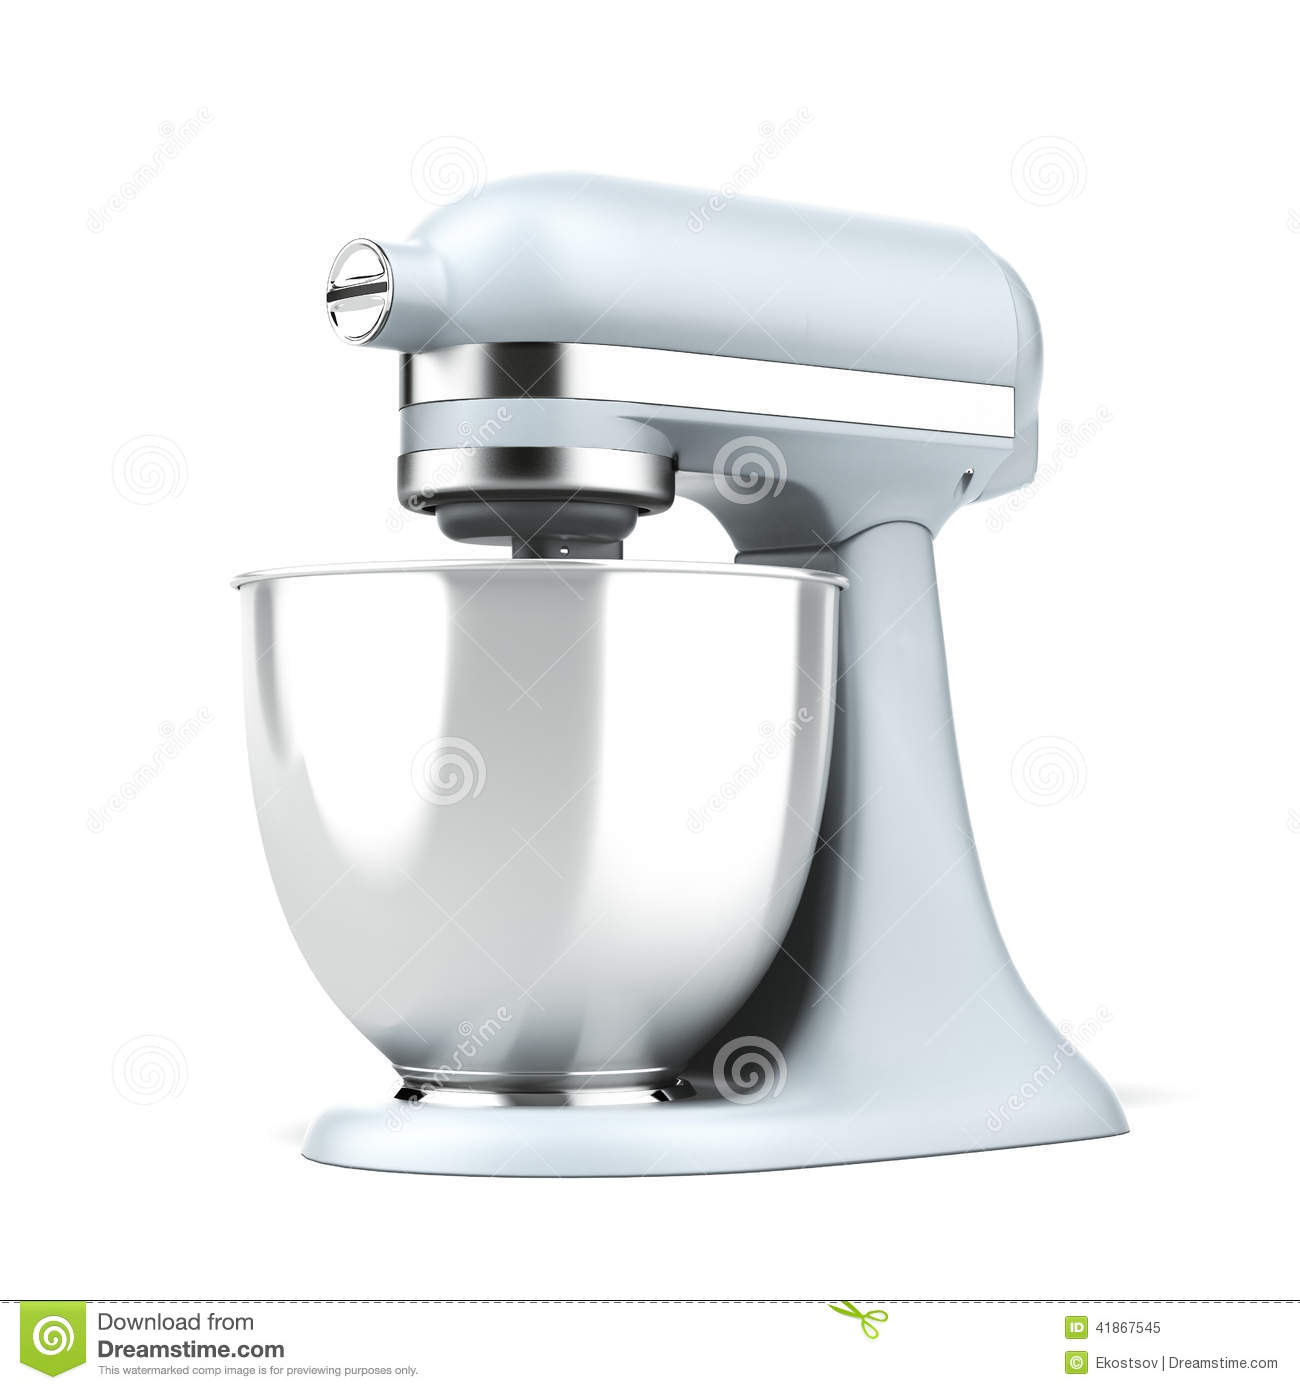 Modern Exhibition Stand Mixer : Blue stand mixer stock illustration image